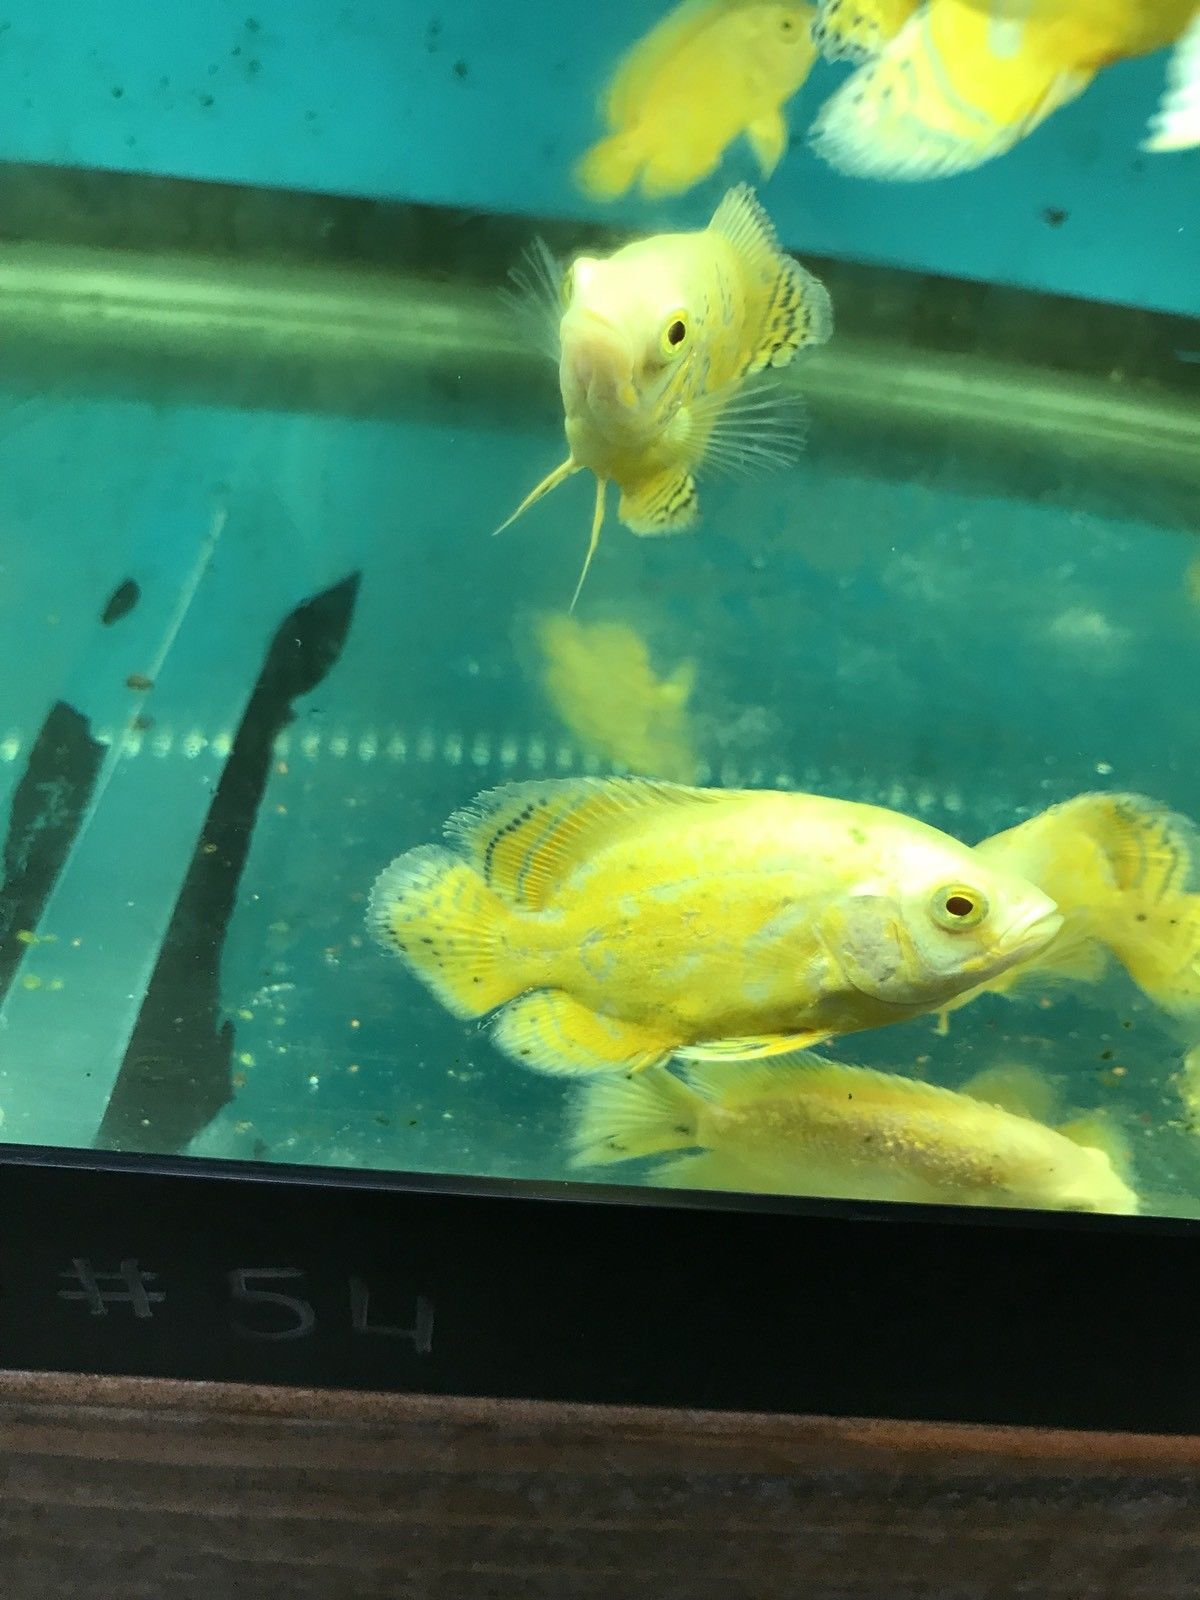 Lemon Oscar 2 5 In Length Live Tropical Fish Oscar Fish Fish Fish For Sale